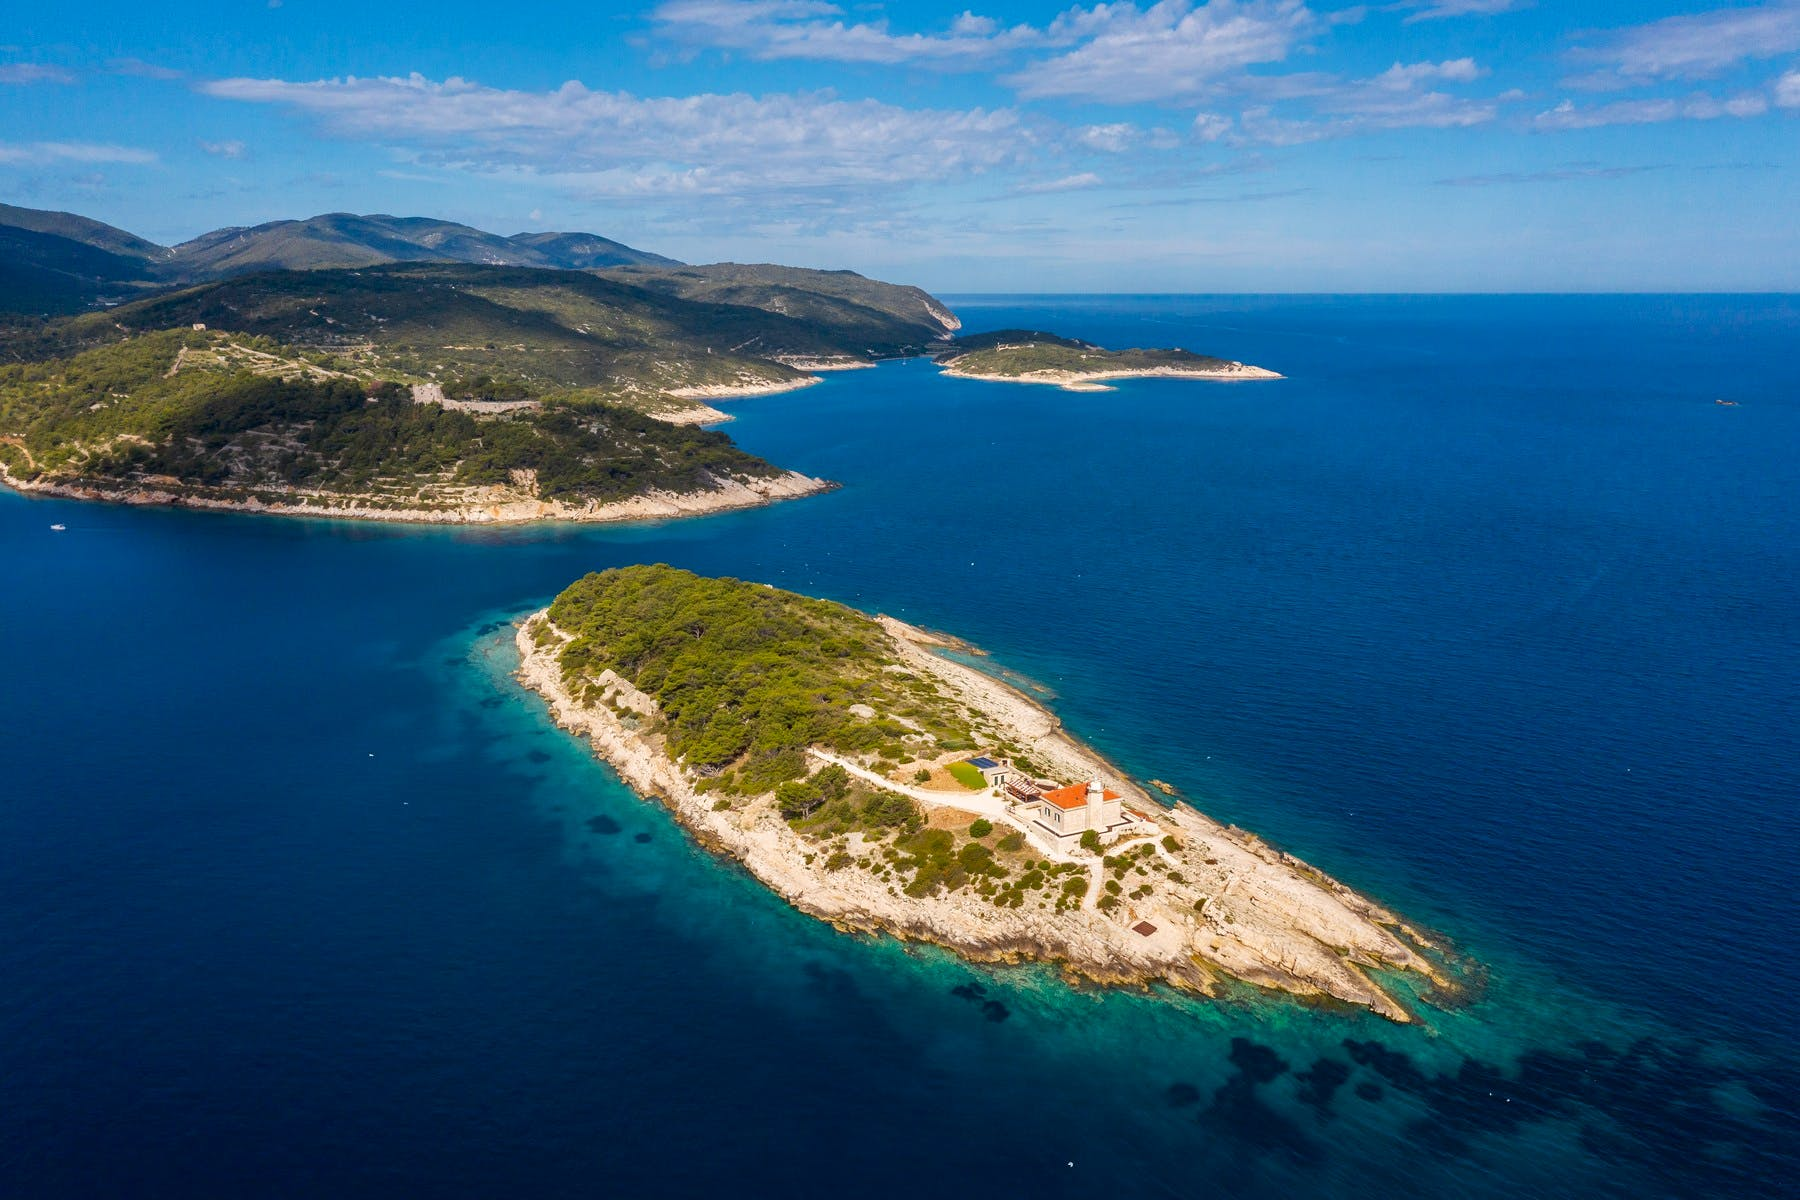 Private islet for rent near the island of Vis